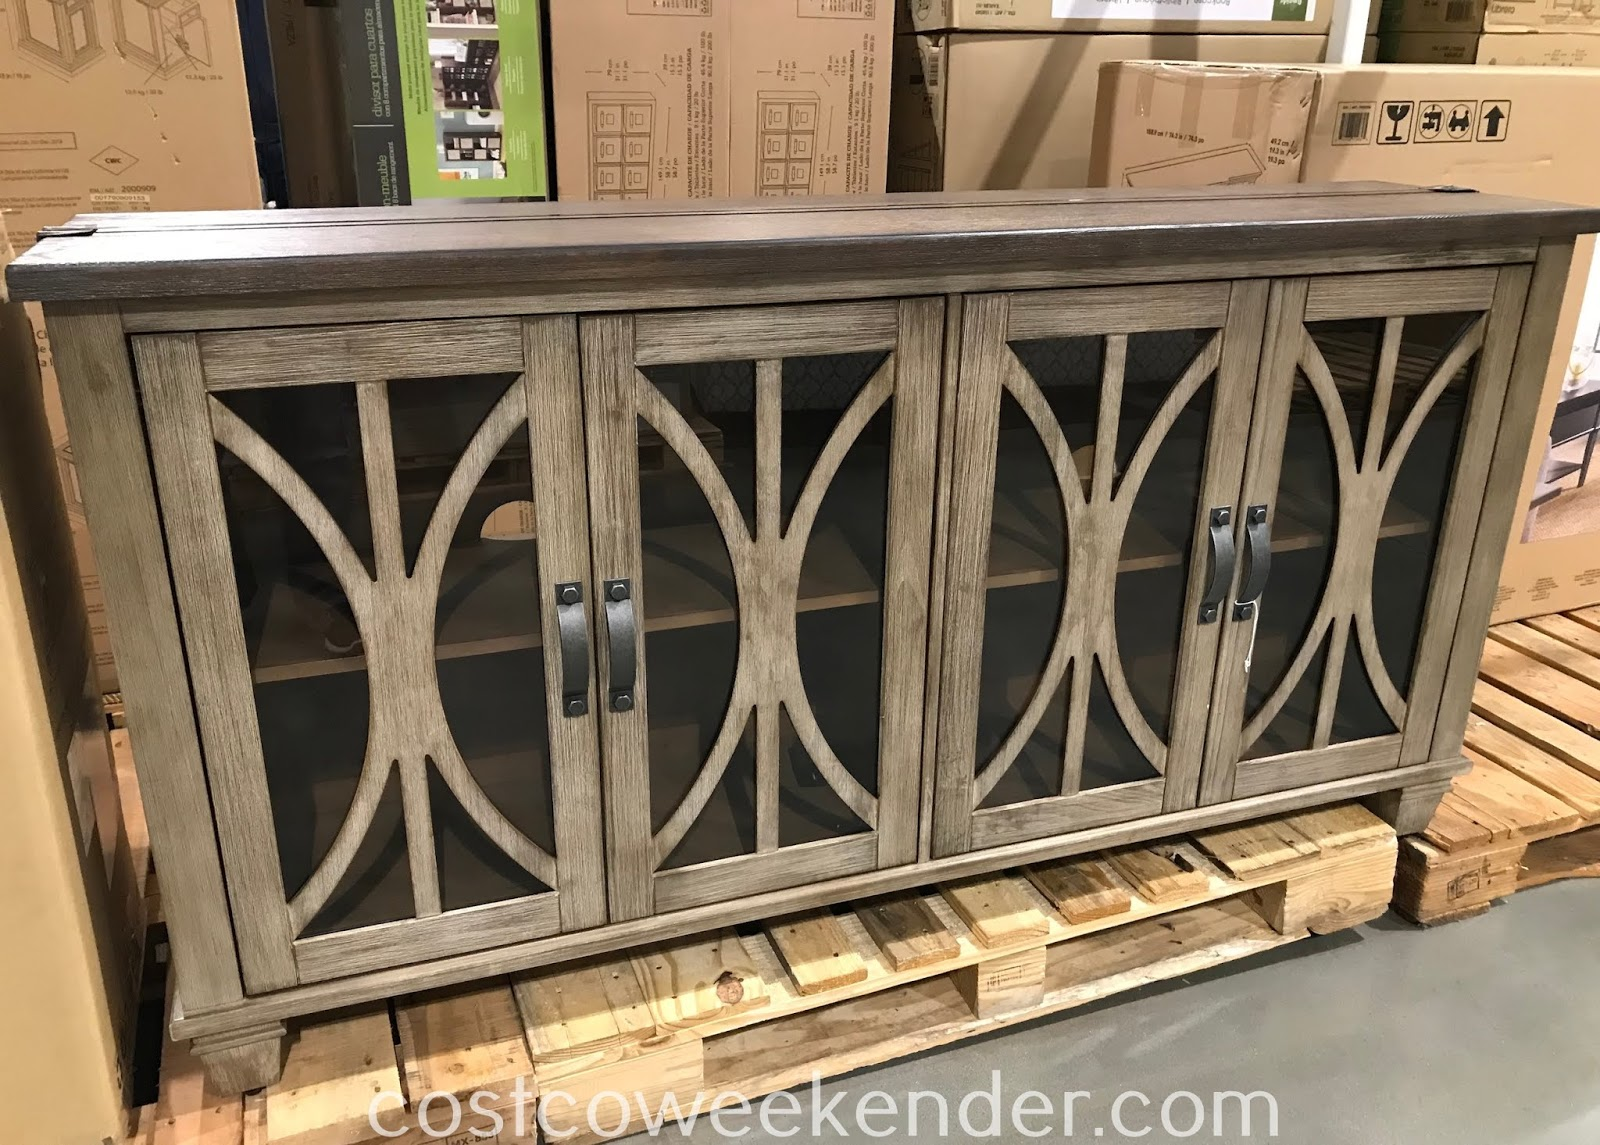 Furnish your home's living room with the Martin Home Accent Console